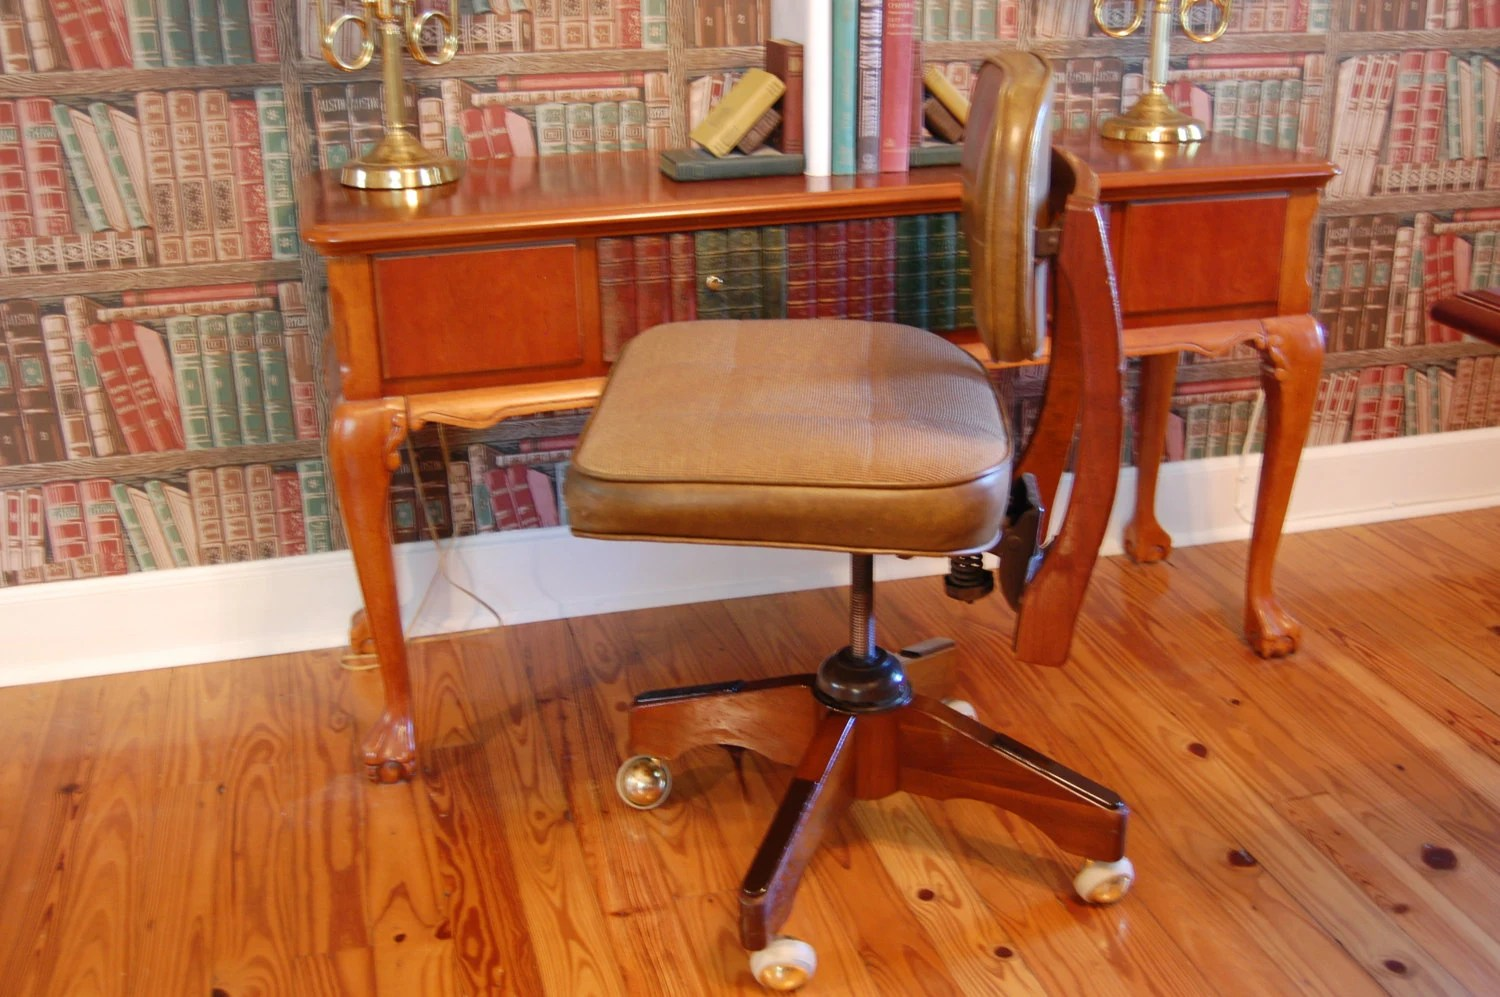 Industrial Office Chair Vintage Industrial 1950s Office Chair Metal And Wood Mid